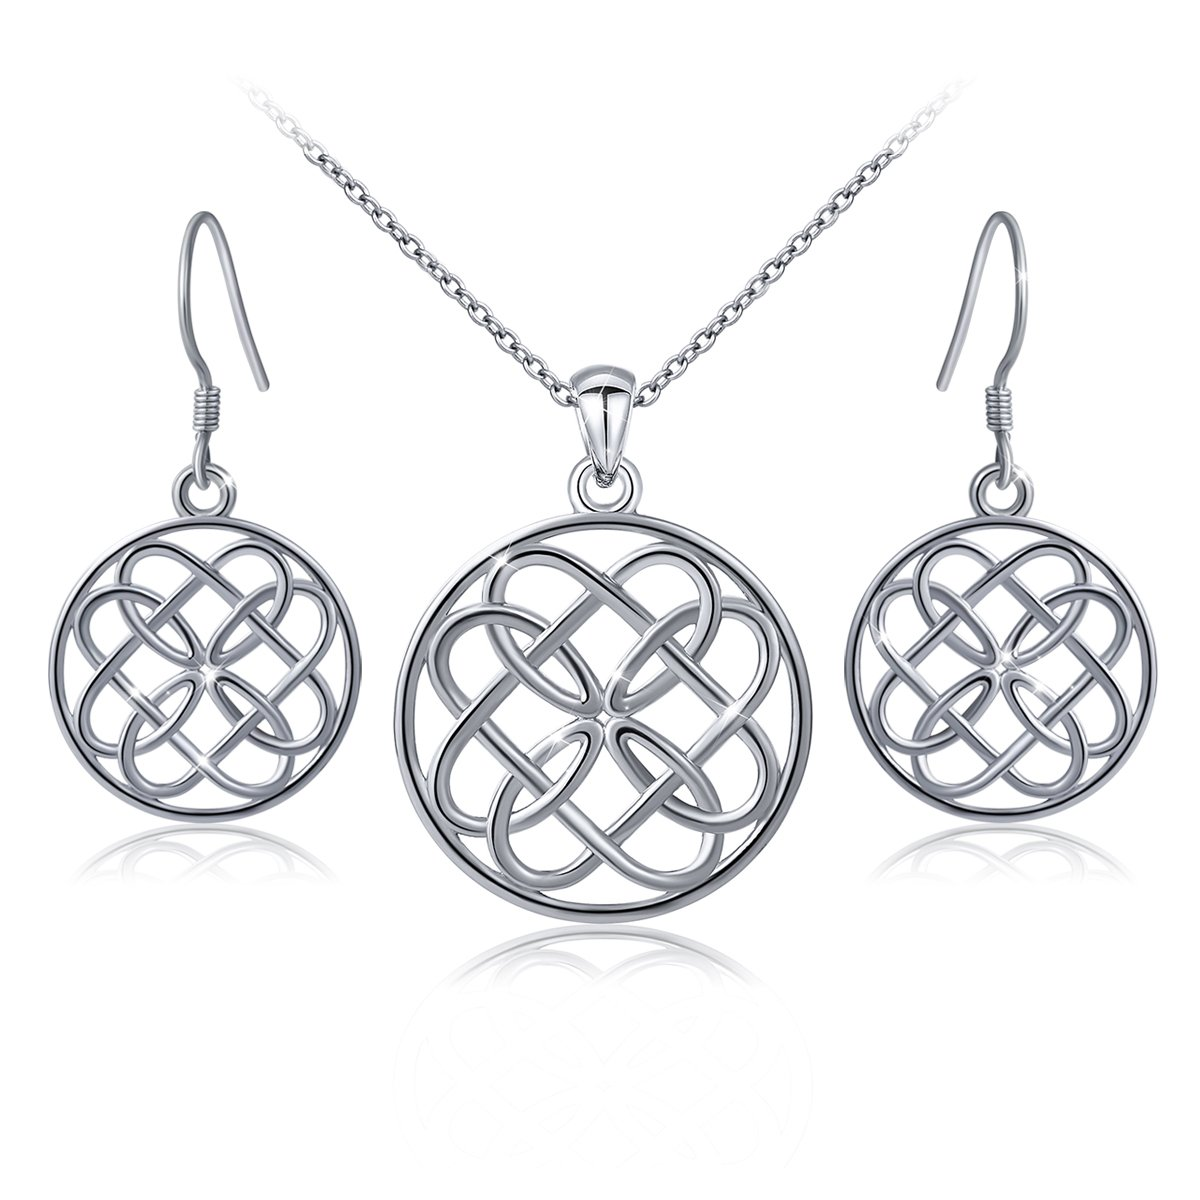 clothing jewellery celtic estore knot mariposa necklaces necklace style